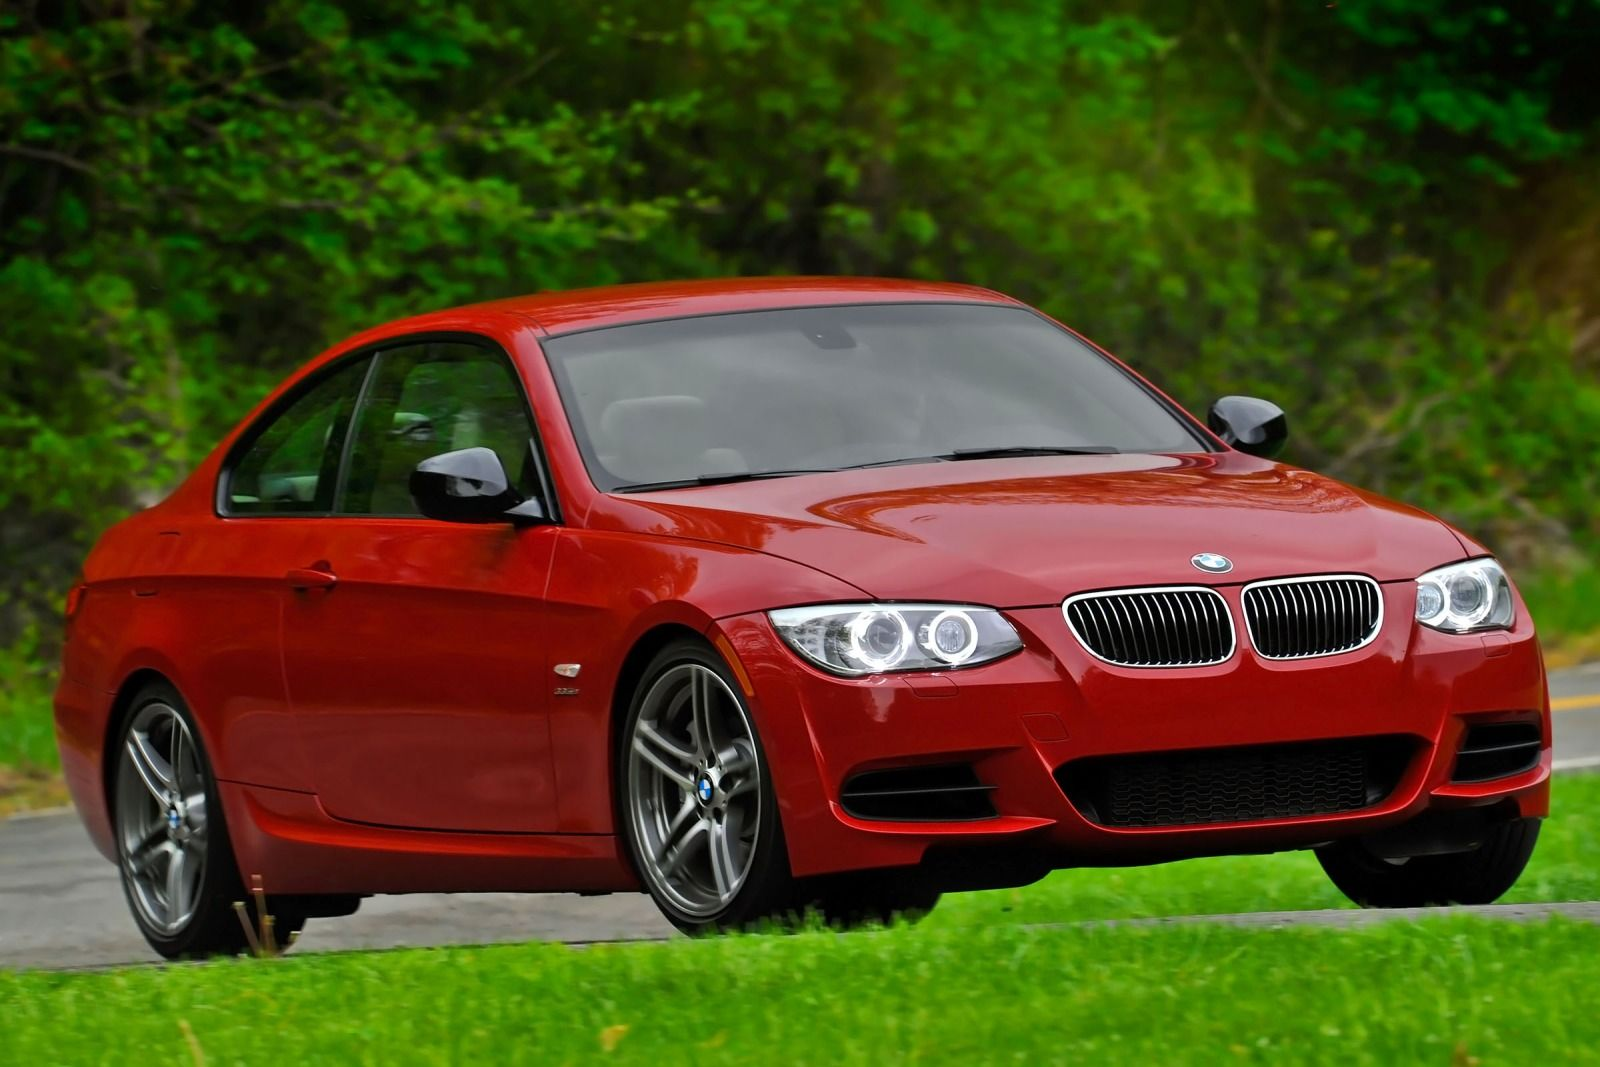 BMW 3 series 335is 2013 photo - 9